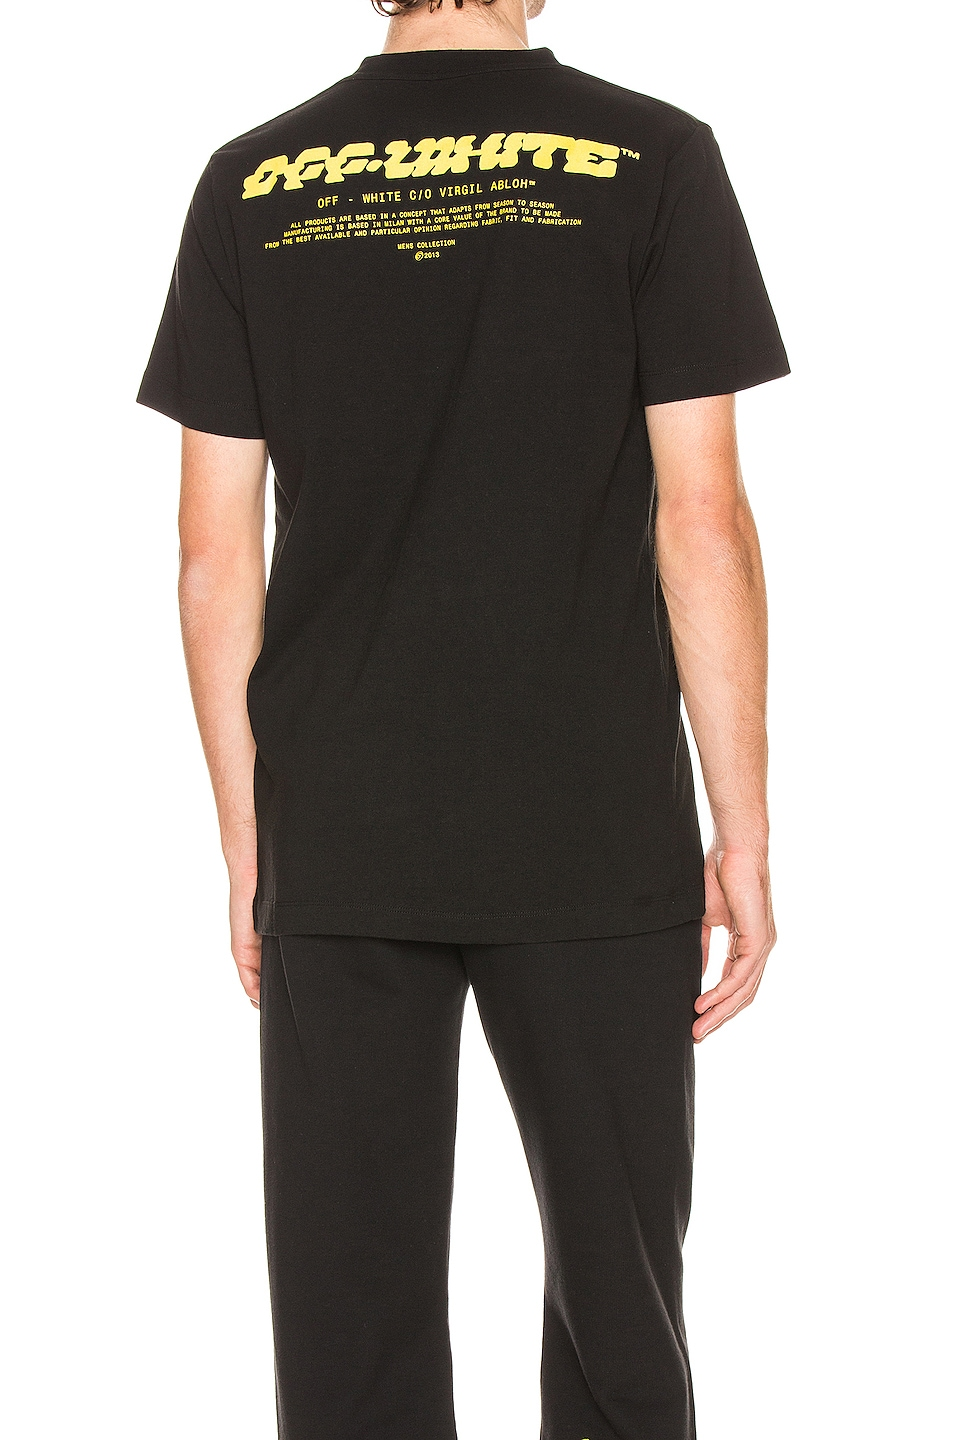 Image 1 of OFF-WHITE Disrupted Font Short Sleeve Tee in Black & Yellow